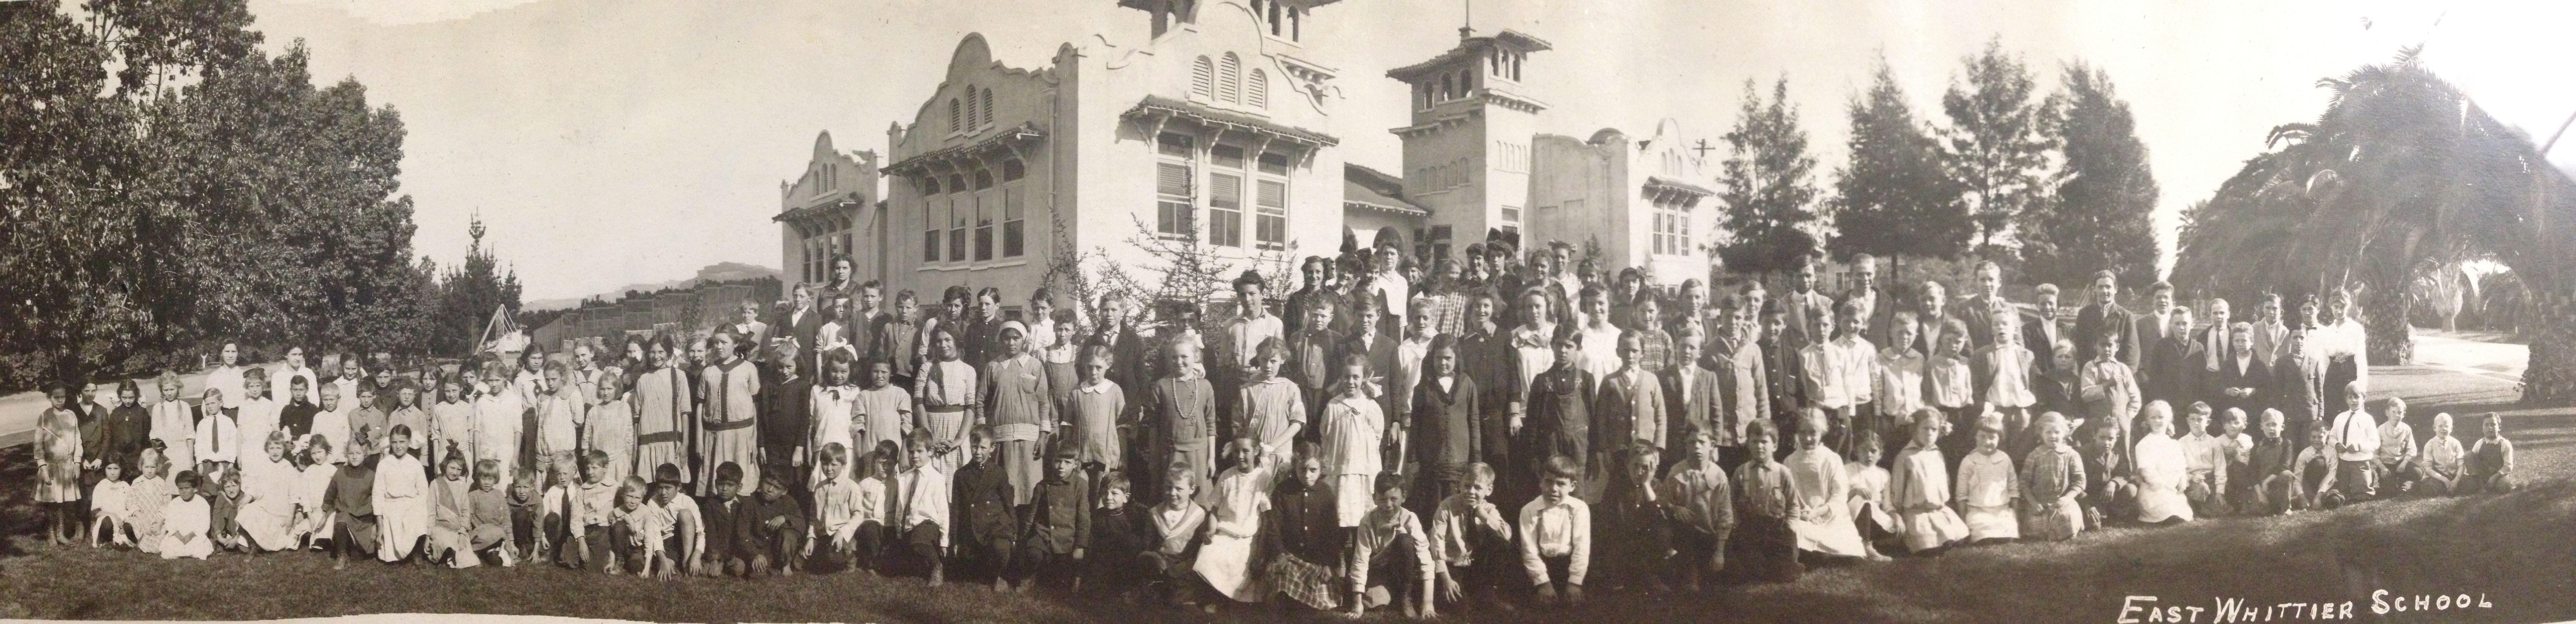 East Whittier School -picture shows an early Whittier class of school children from the East Whittier School.